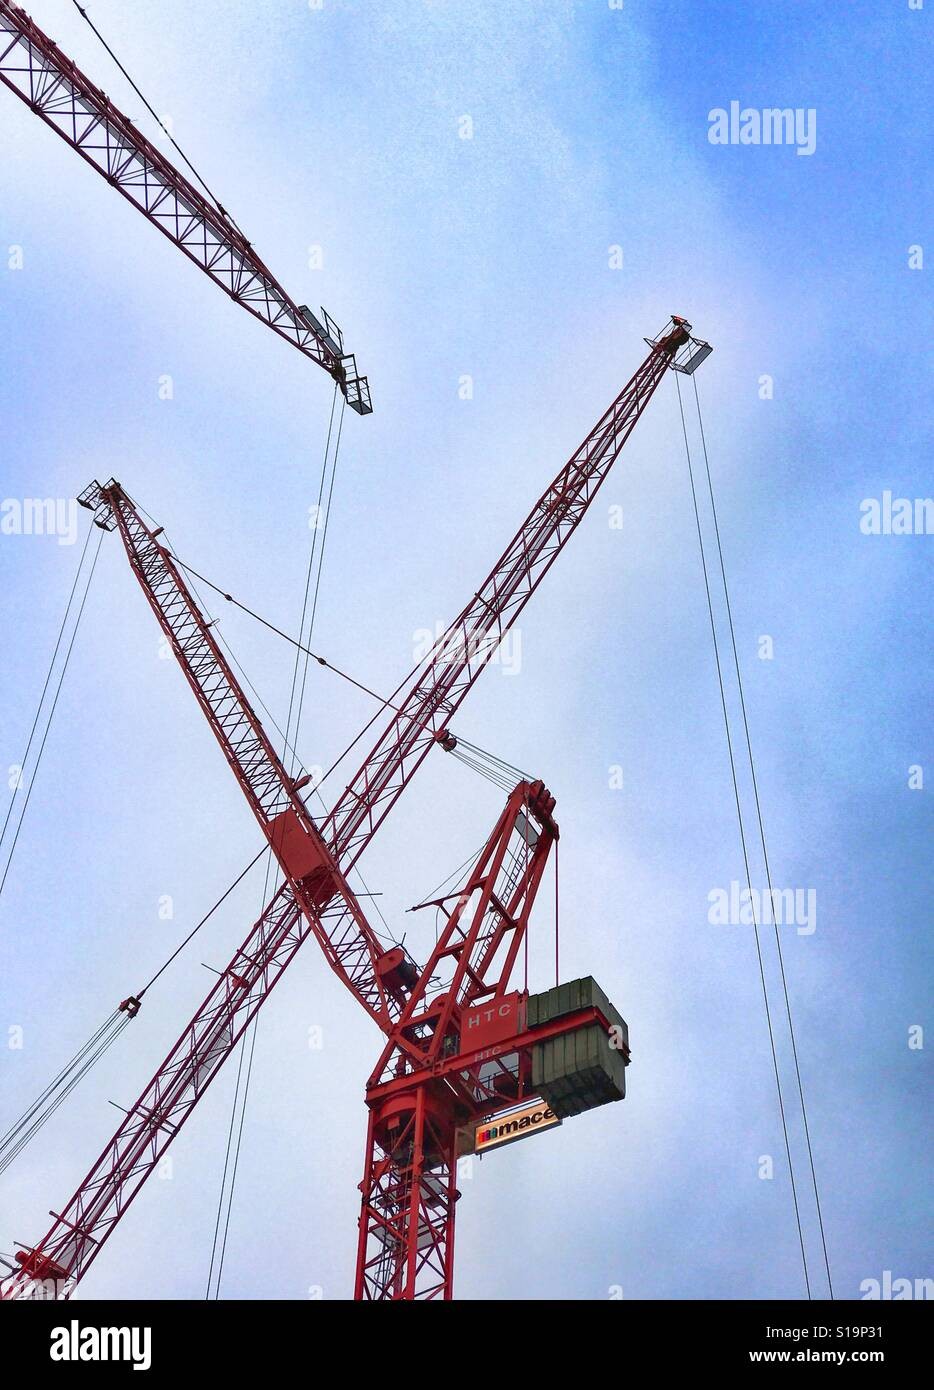 Construction cranes - Stock Image